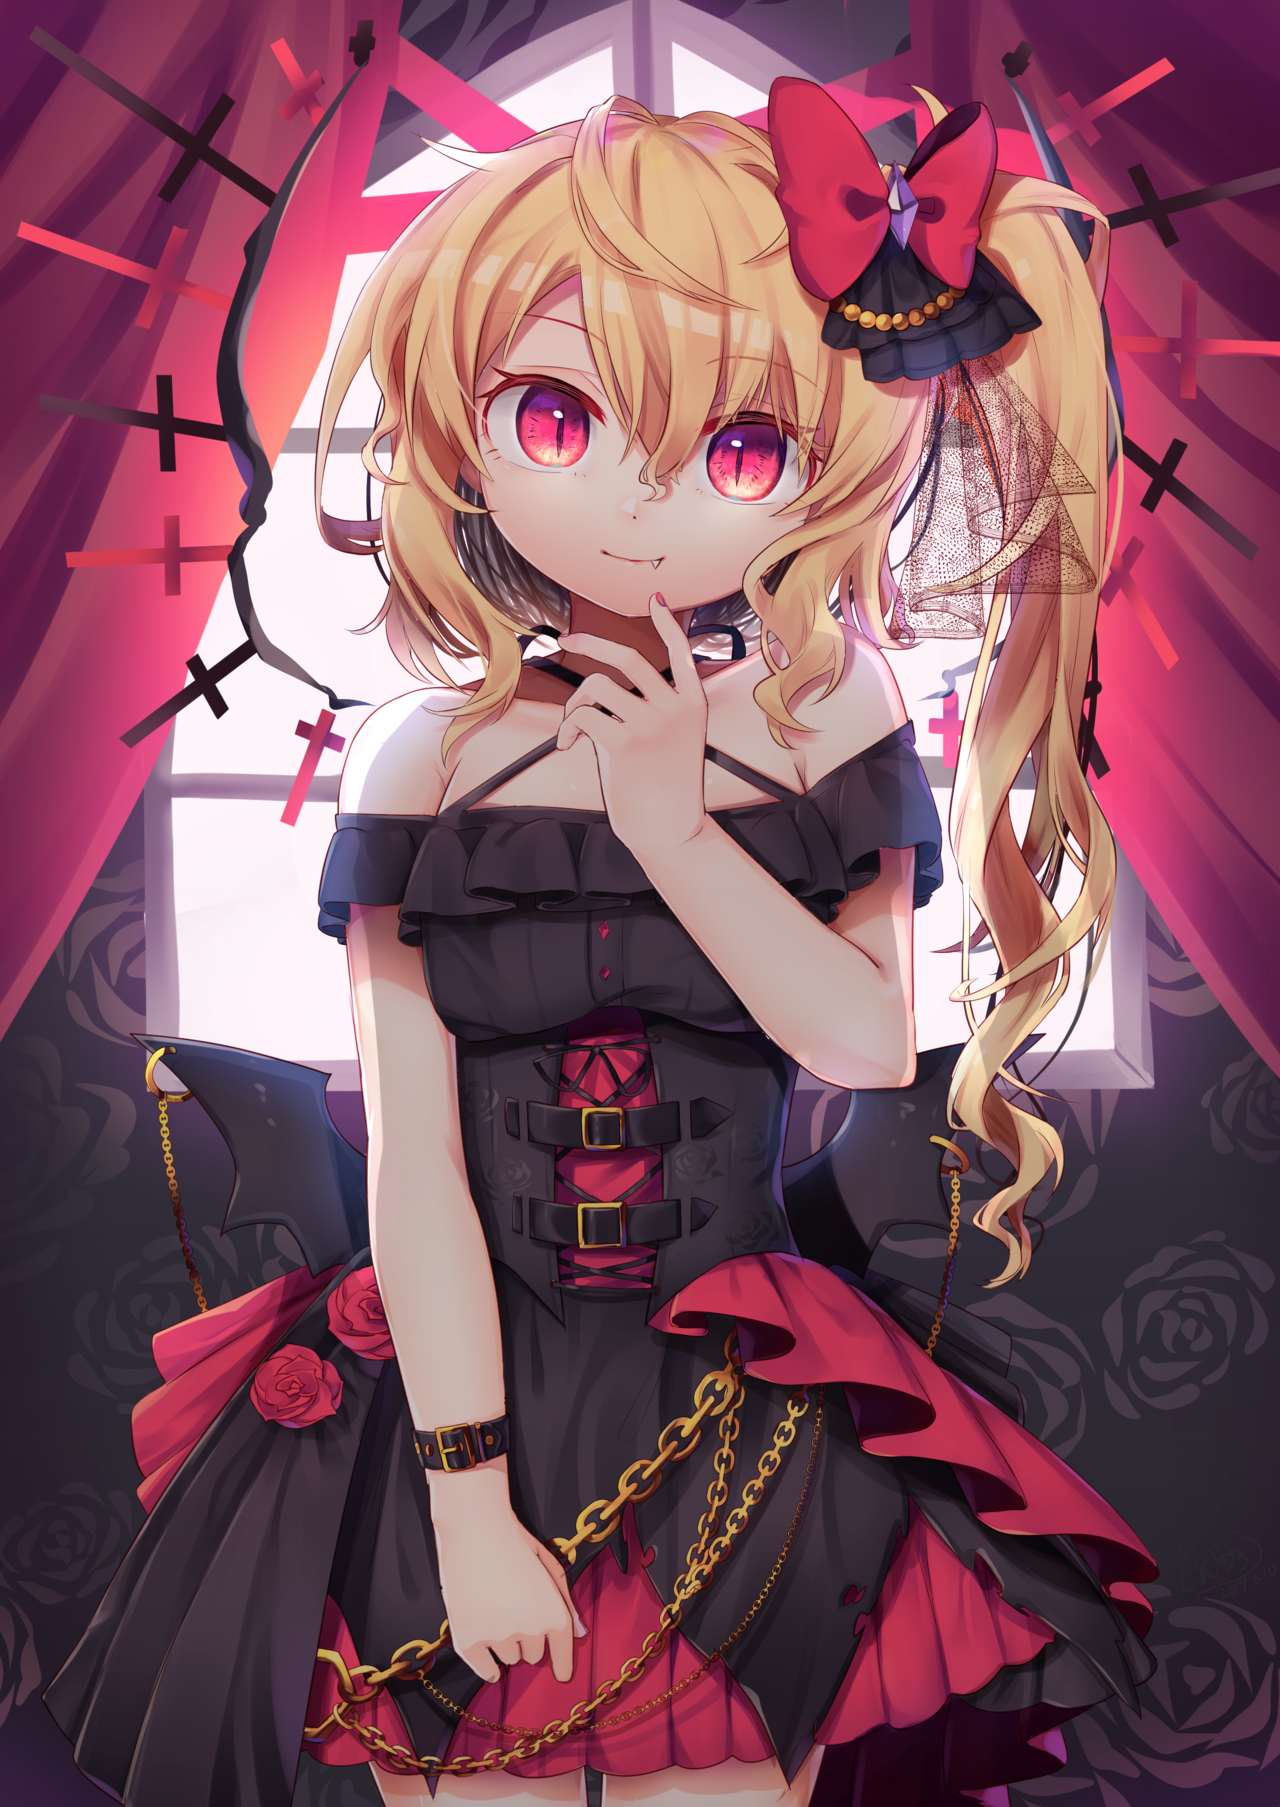 Cute vampire girl Flandre Scarlet: Touhou Project  (10 Mar 10